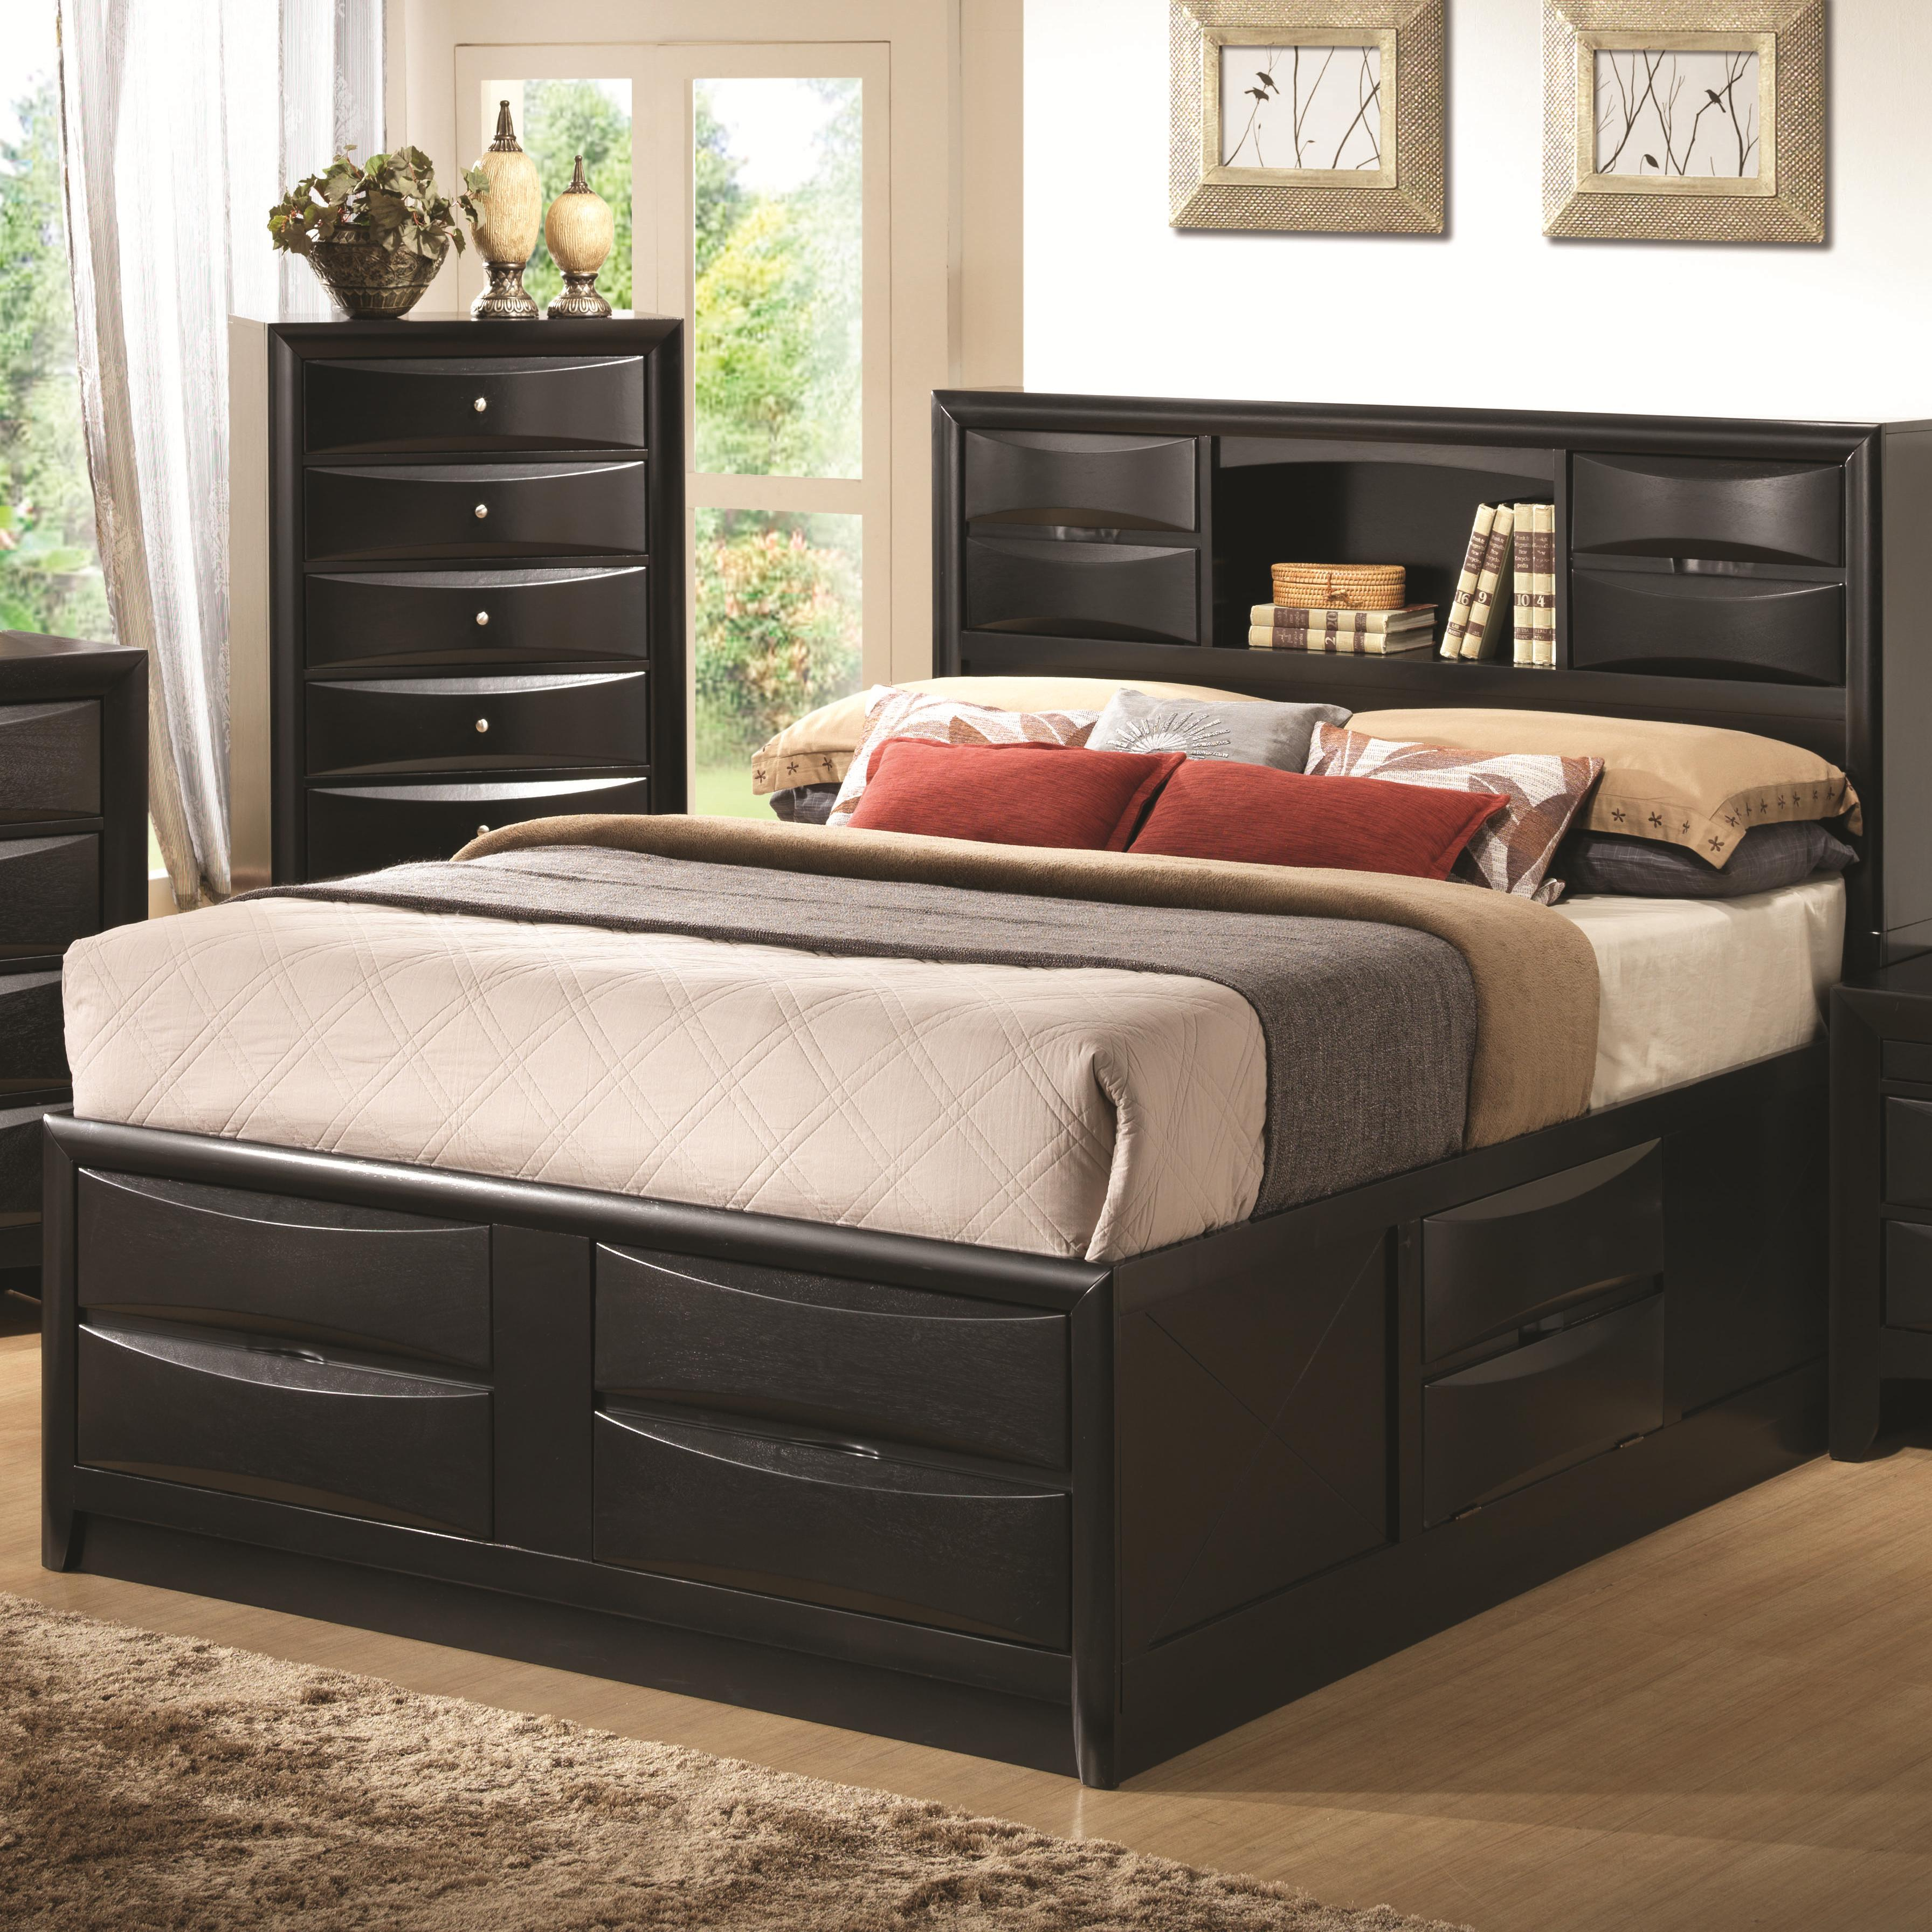 Coaster Briana King Contemporary Storage Bed With Bookshelf A1 Furniture Mattress Bookcase Beds